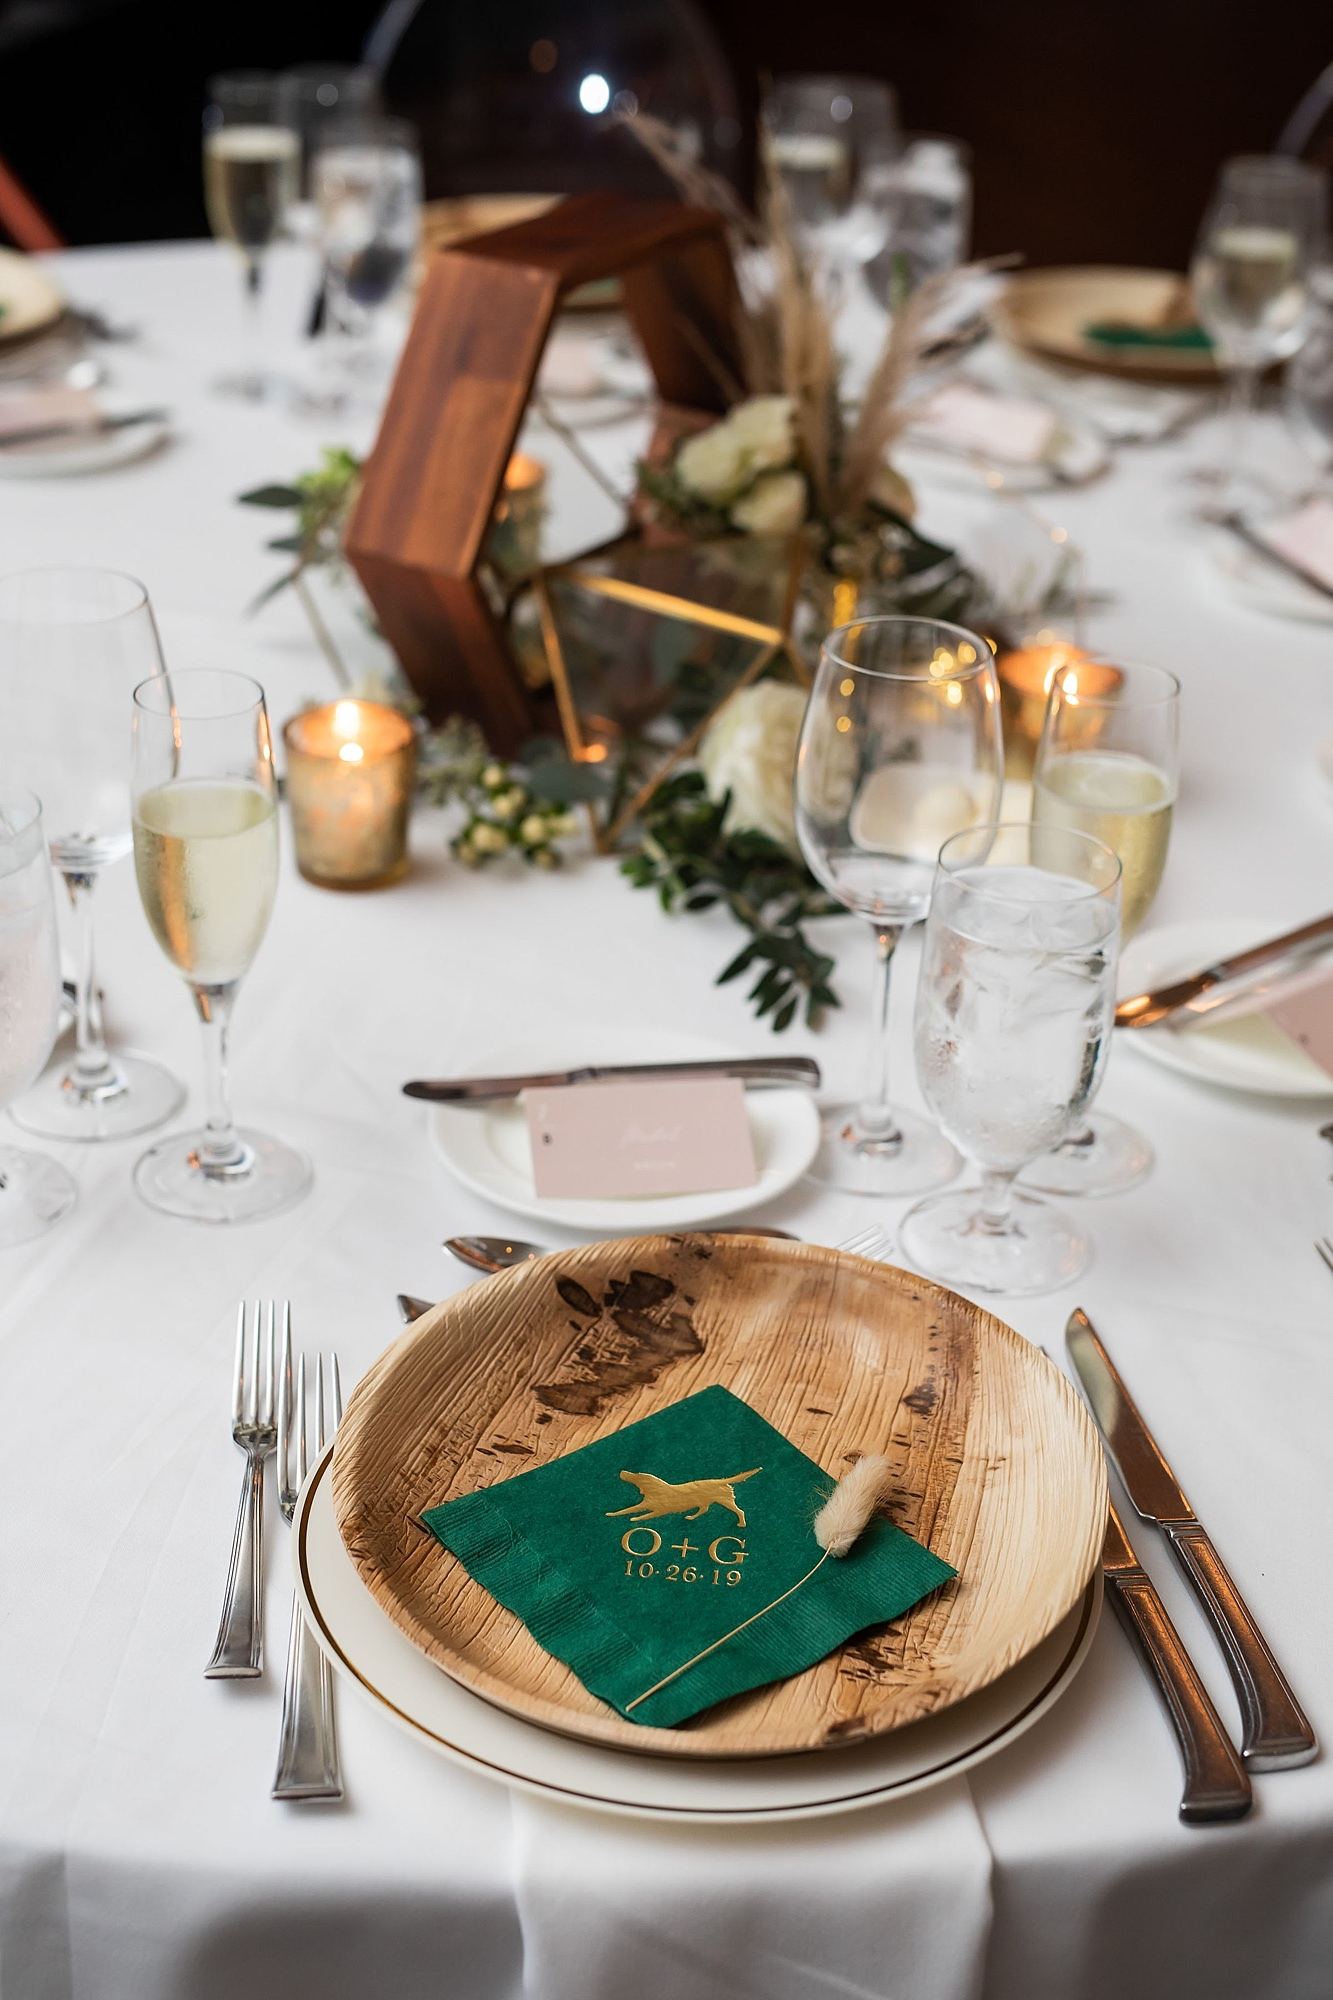 Boho Florida Wedding Reception Decor With Wooden And Greenery Centerpieces With Bamboo Plates And Personalized Dog Monogram Napkins Marry Me Tampa Bay Local Real Wedding Inspiration Vendor Recommendation Reviews